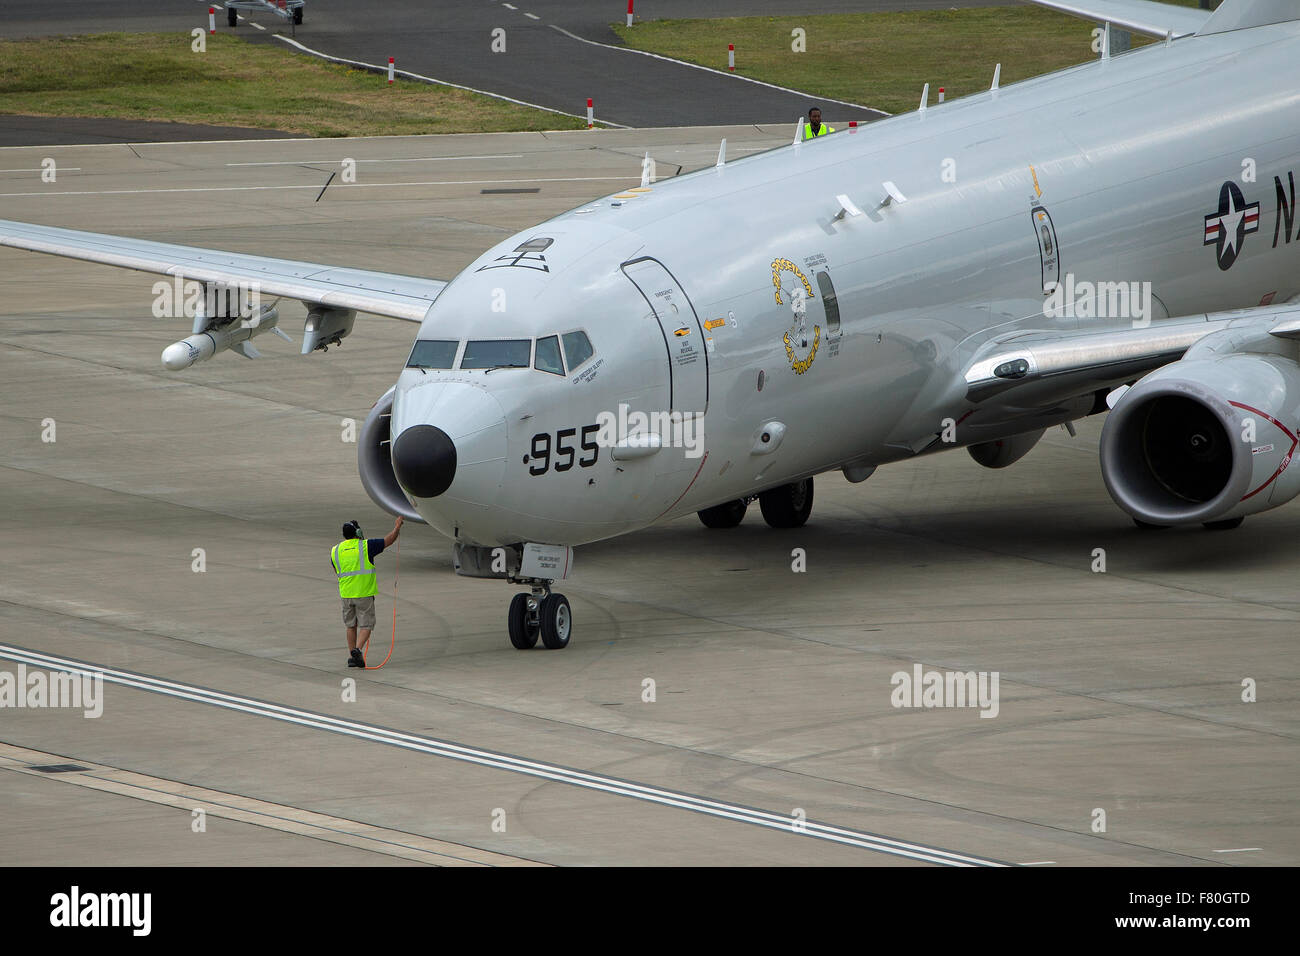 Boeing P-8 Orion maritime patrol aircraft - Stock Image